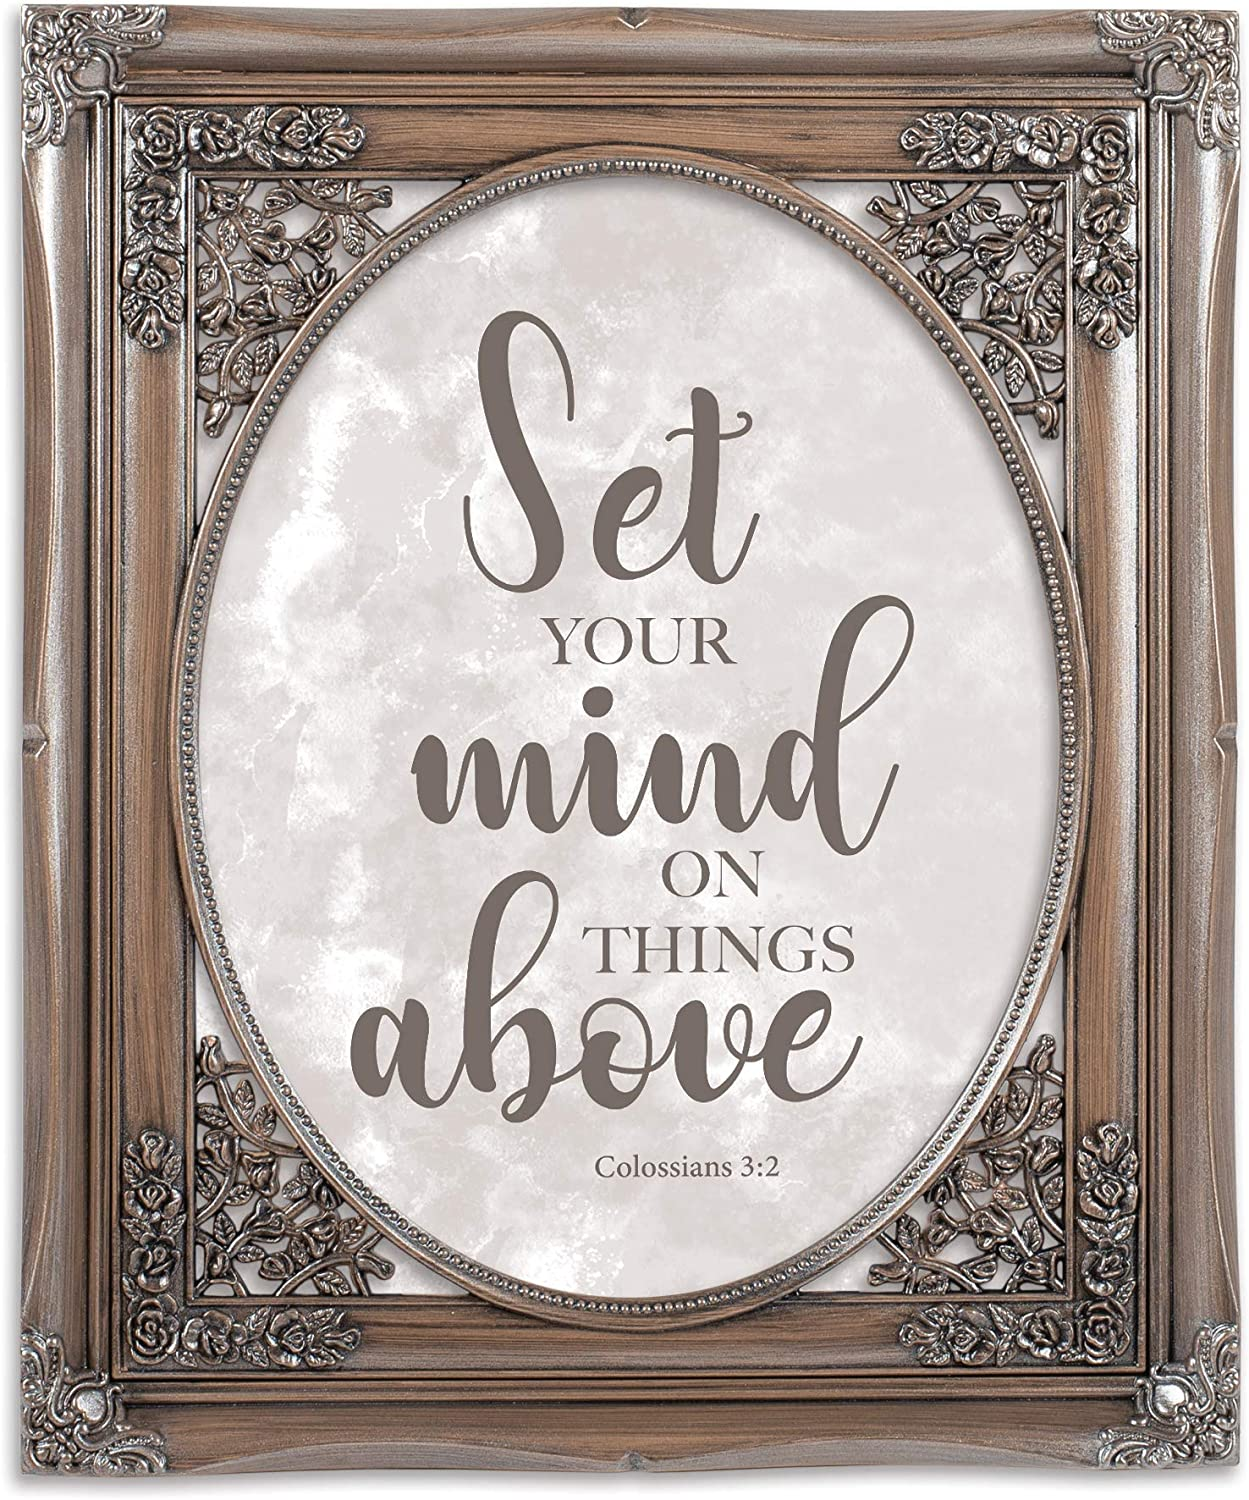 Cottage Garden Set Your Mind on Things Above Brushed Silver Floral Cutout 8 x 10 Table Top and Wall Photo Frame